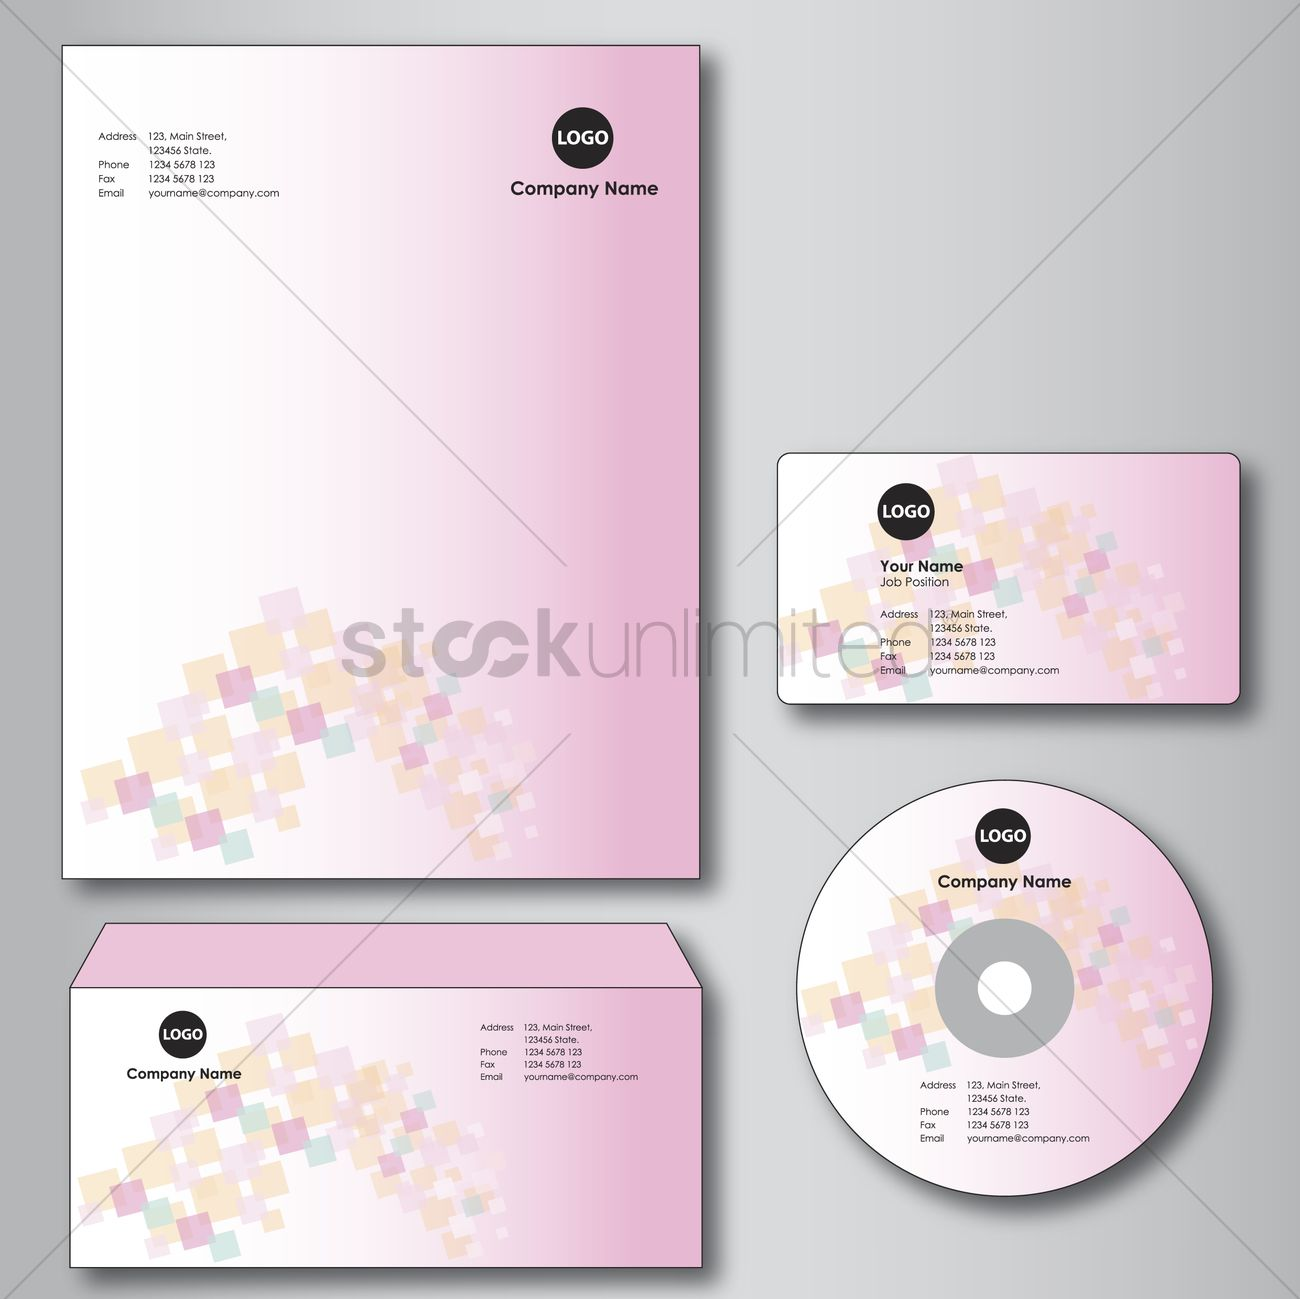 Company paper, envelope, business card and cd Vector Image - 1235453 ...